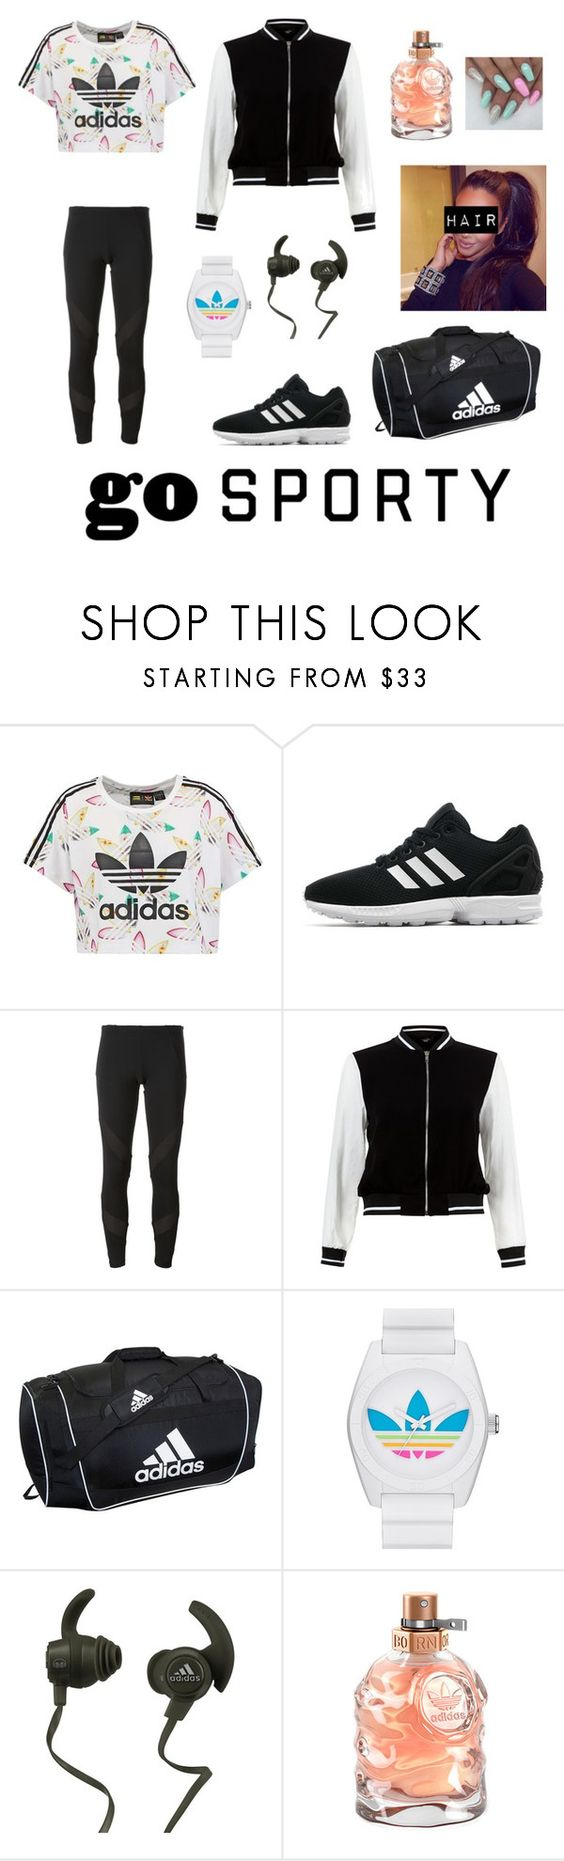 """""""Adidas"""" by tva-lpz ❤ liked on Polyvore featuring adidas Originals, adidas, New Look and Monster"""